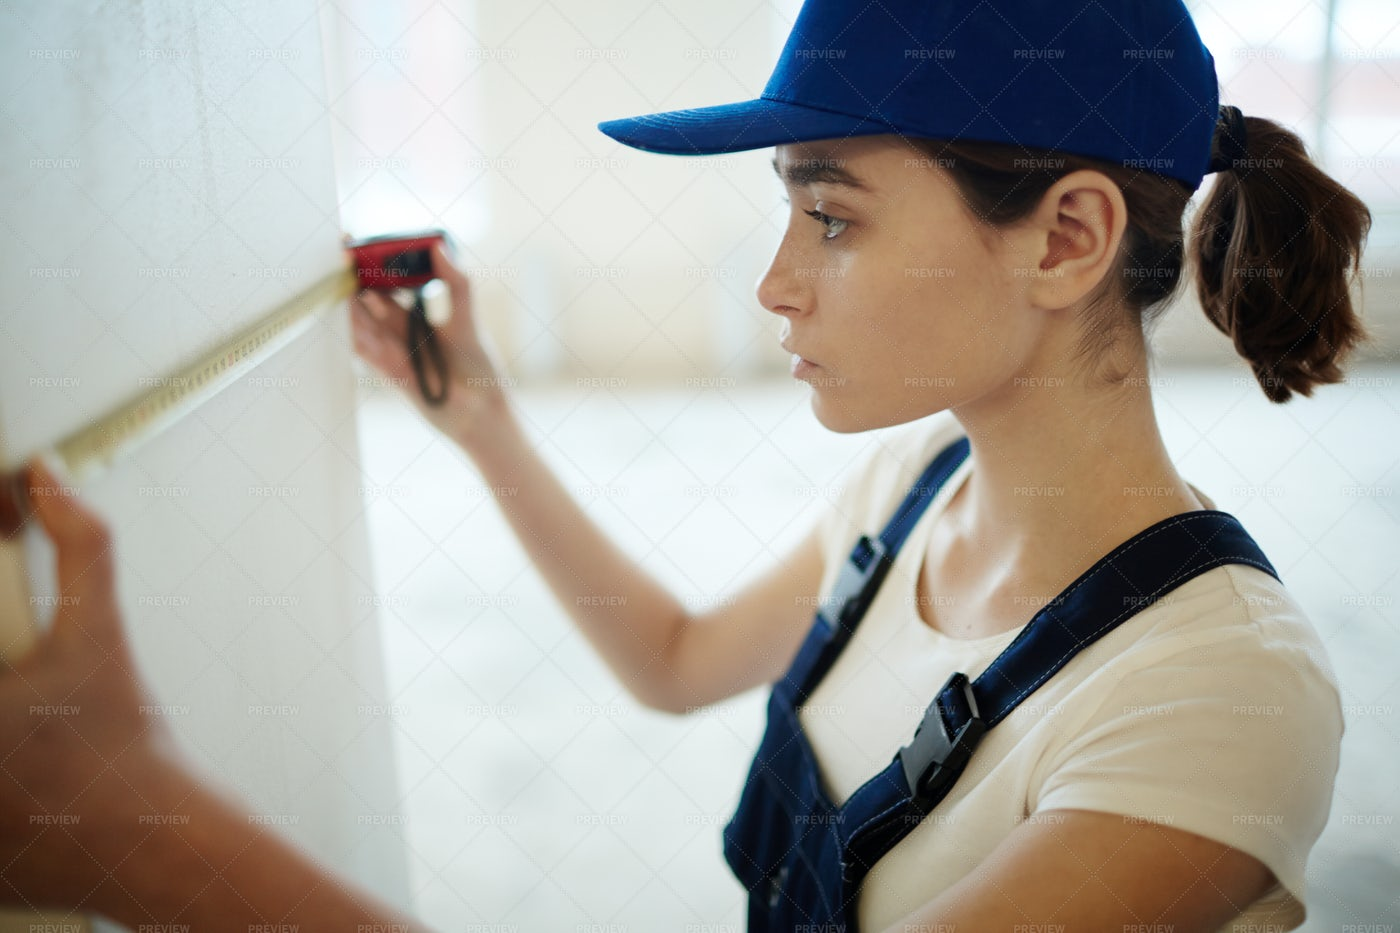 Female Worker Remodeling Space: Stock Photos